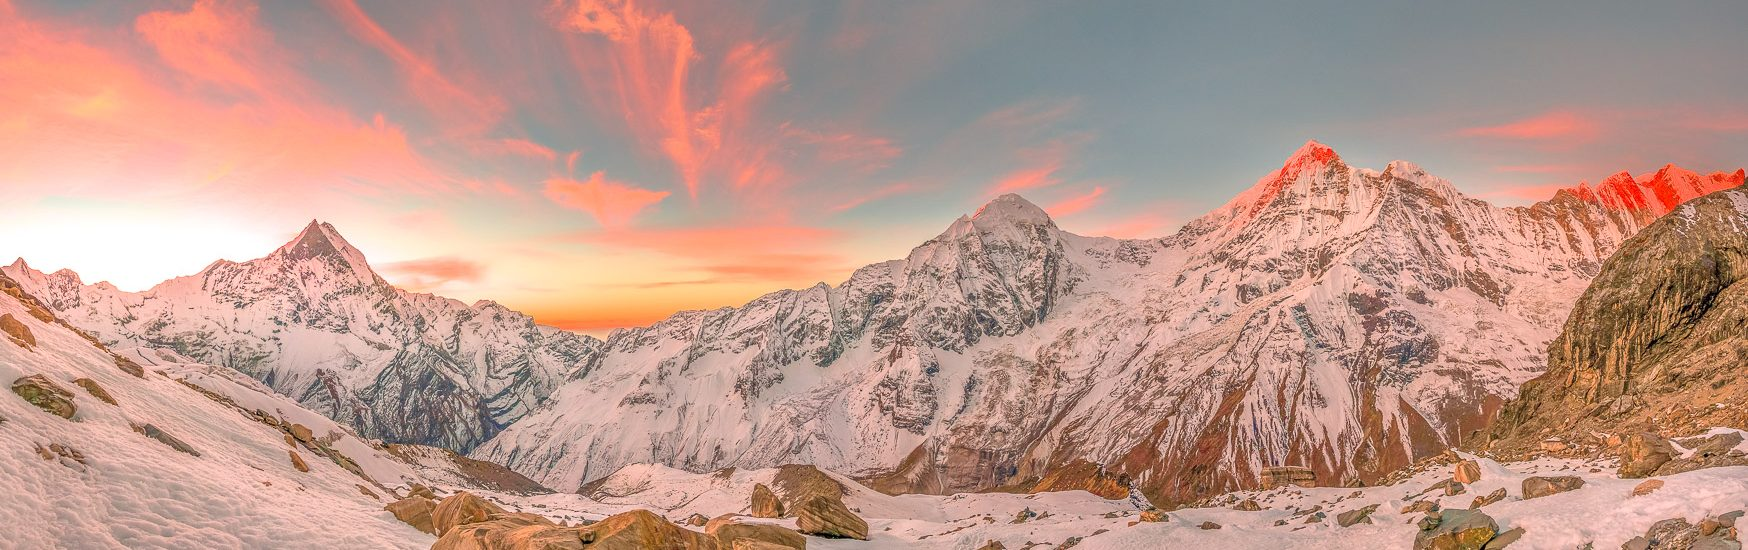 Sunrise view of Annapurna Range from Tharpu Chuli high camp, Nep